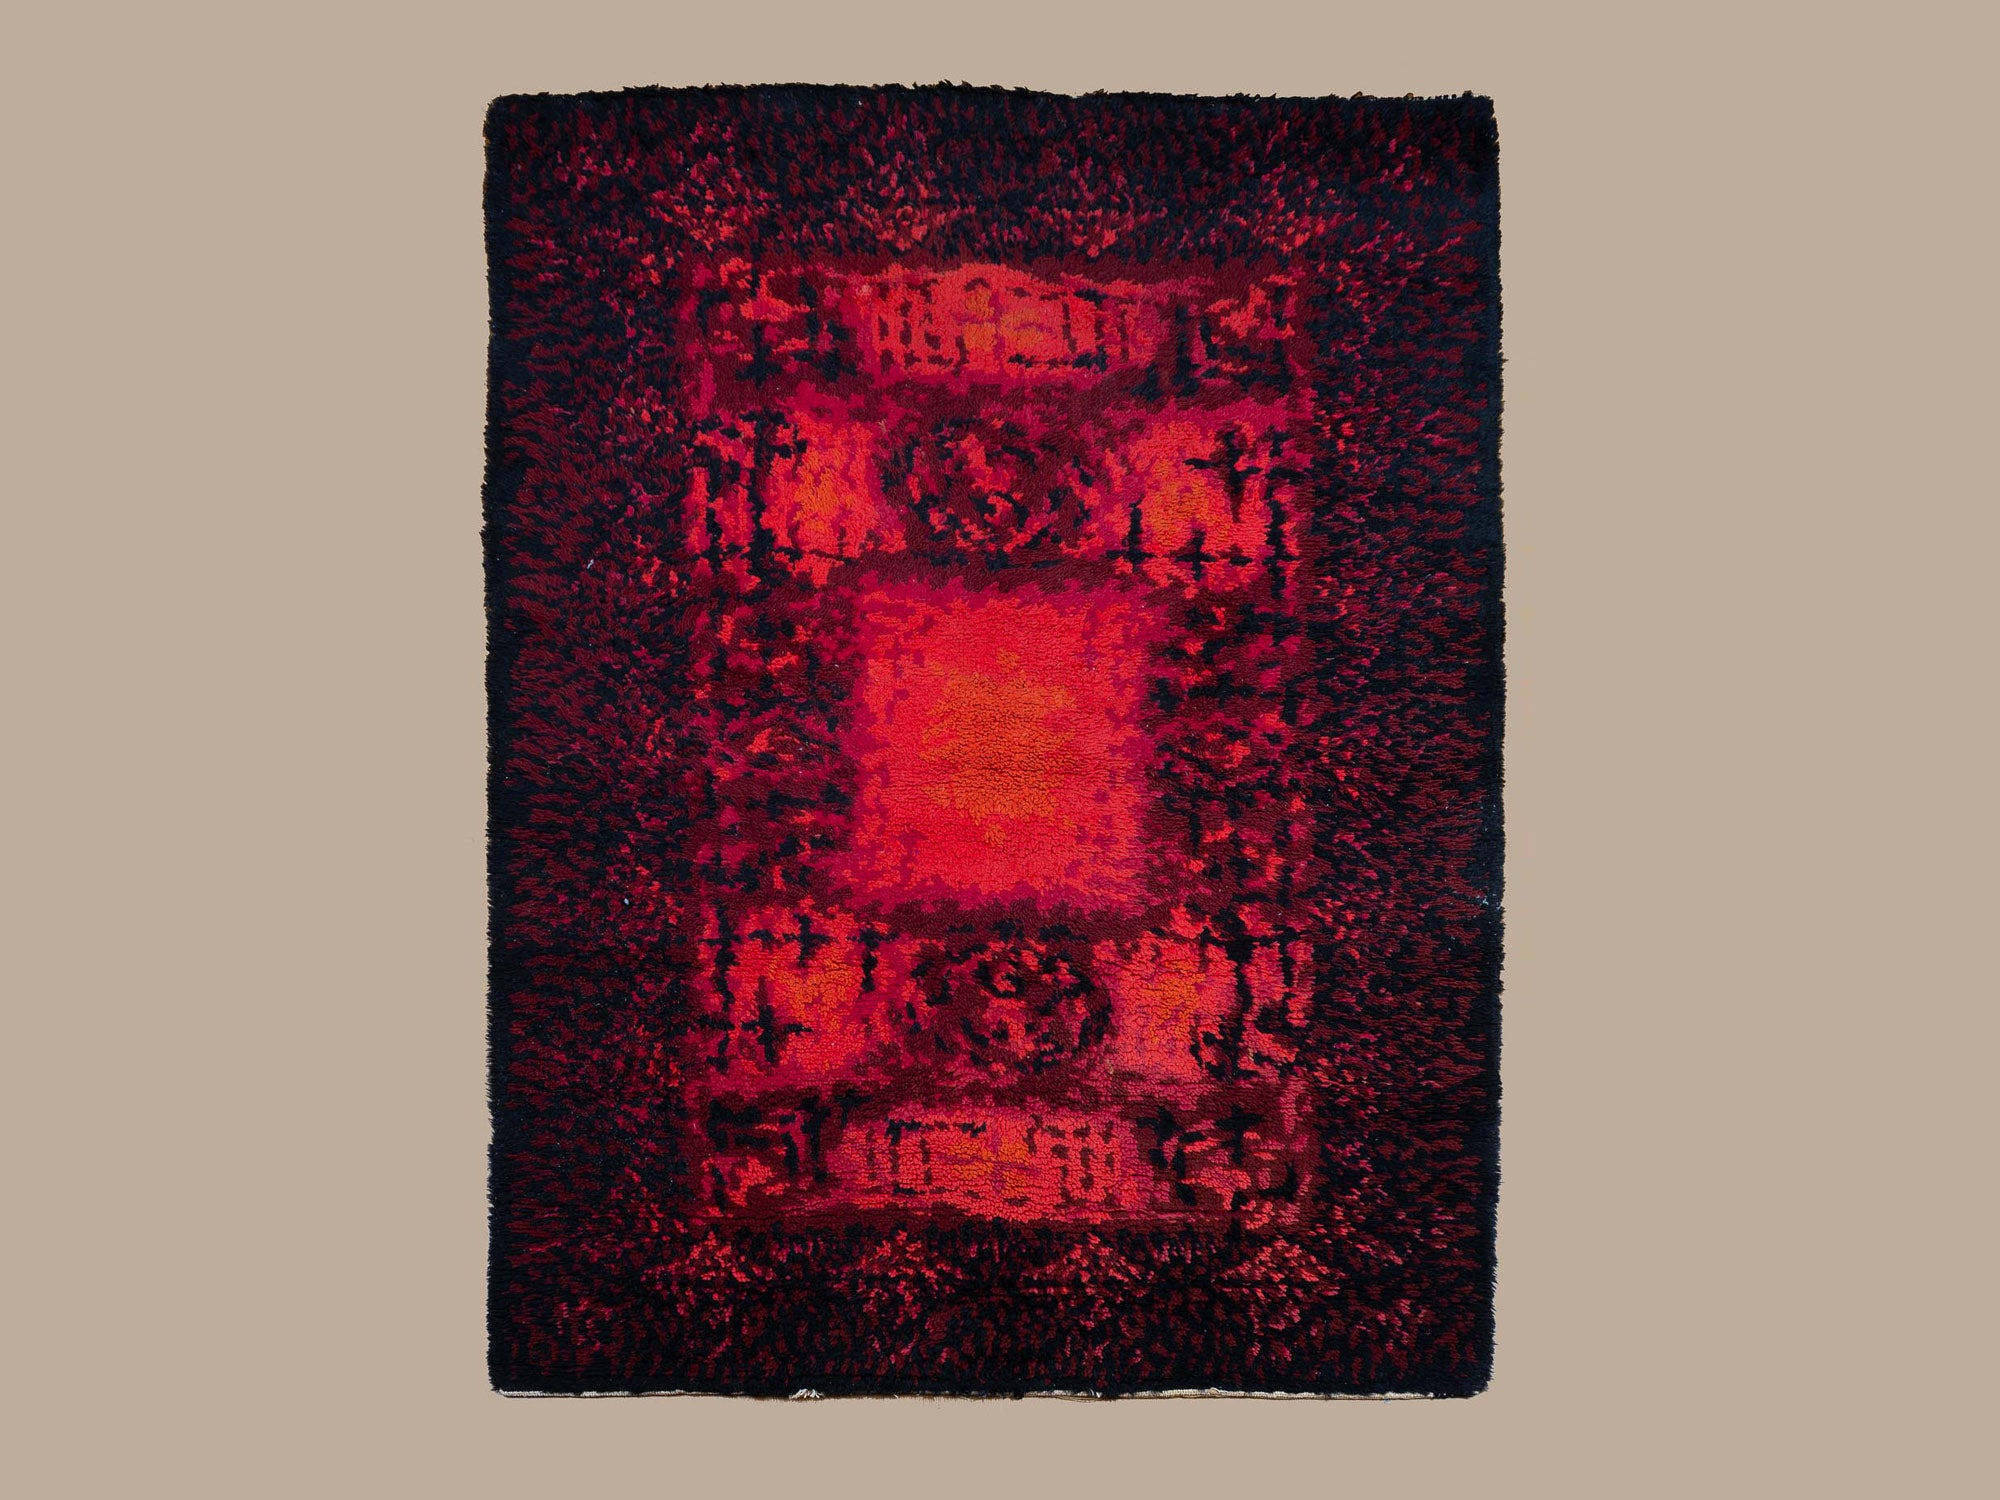 Tapisserie / Tapis Ryijy en laine, Finlande (vers 1960)..Ryijy rug / wall tapestry, Finland (ca. 1960)